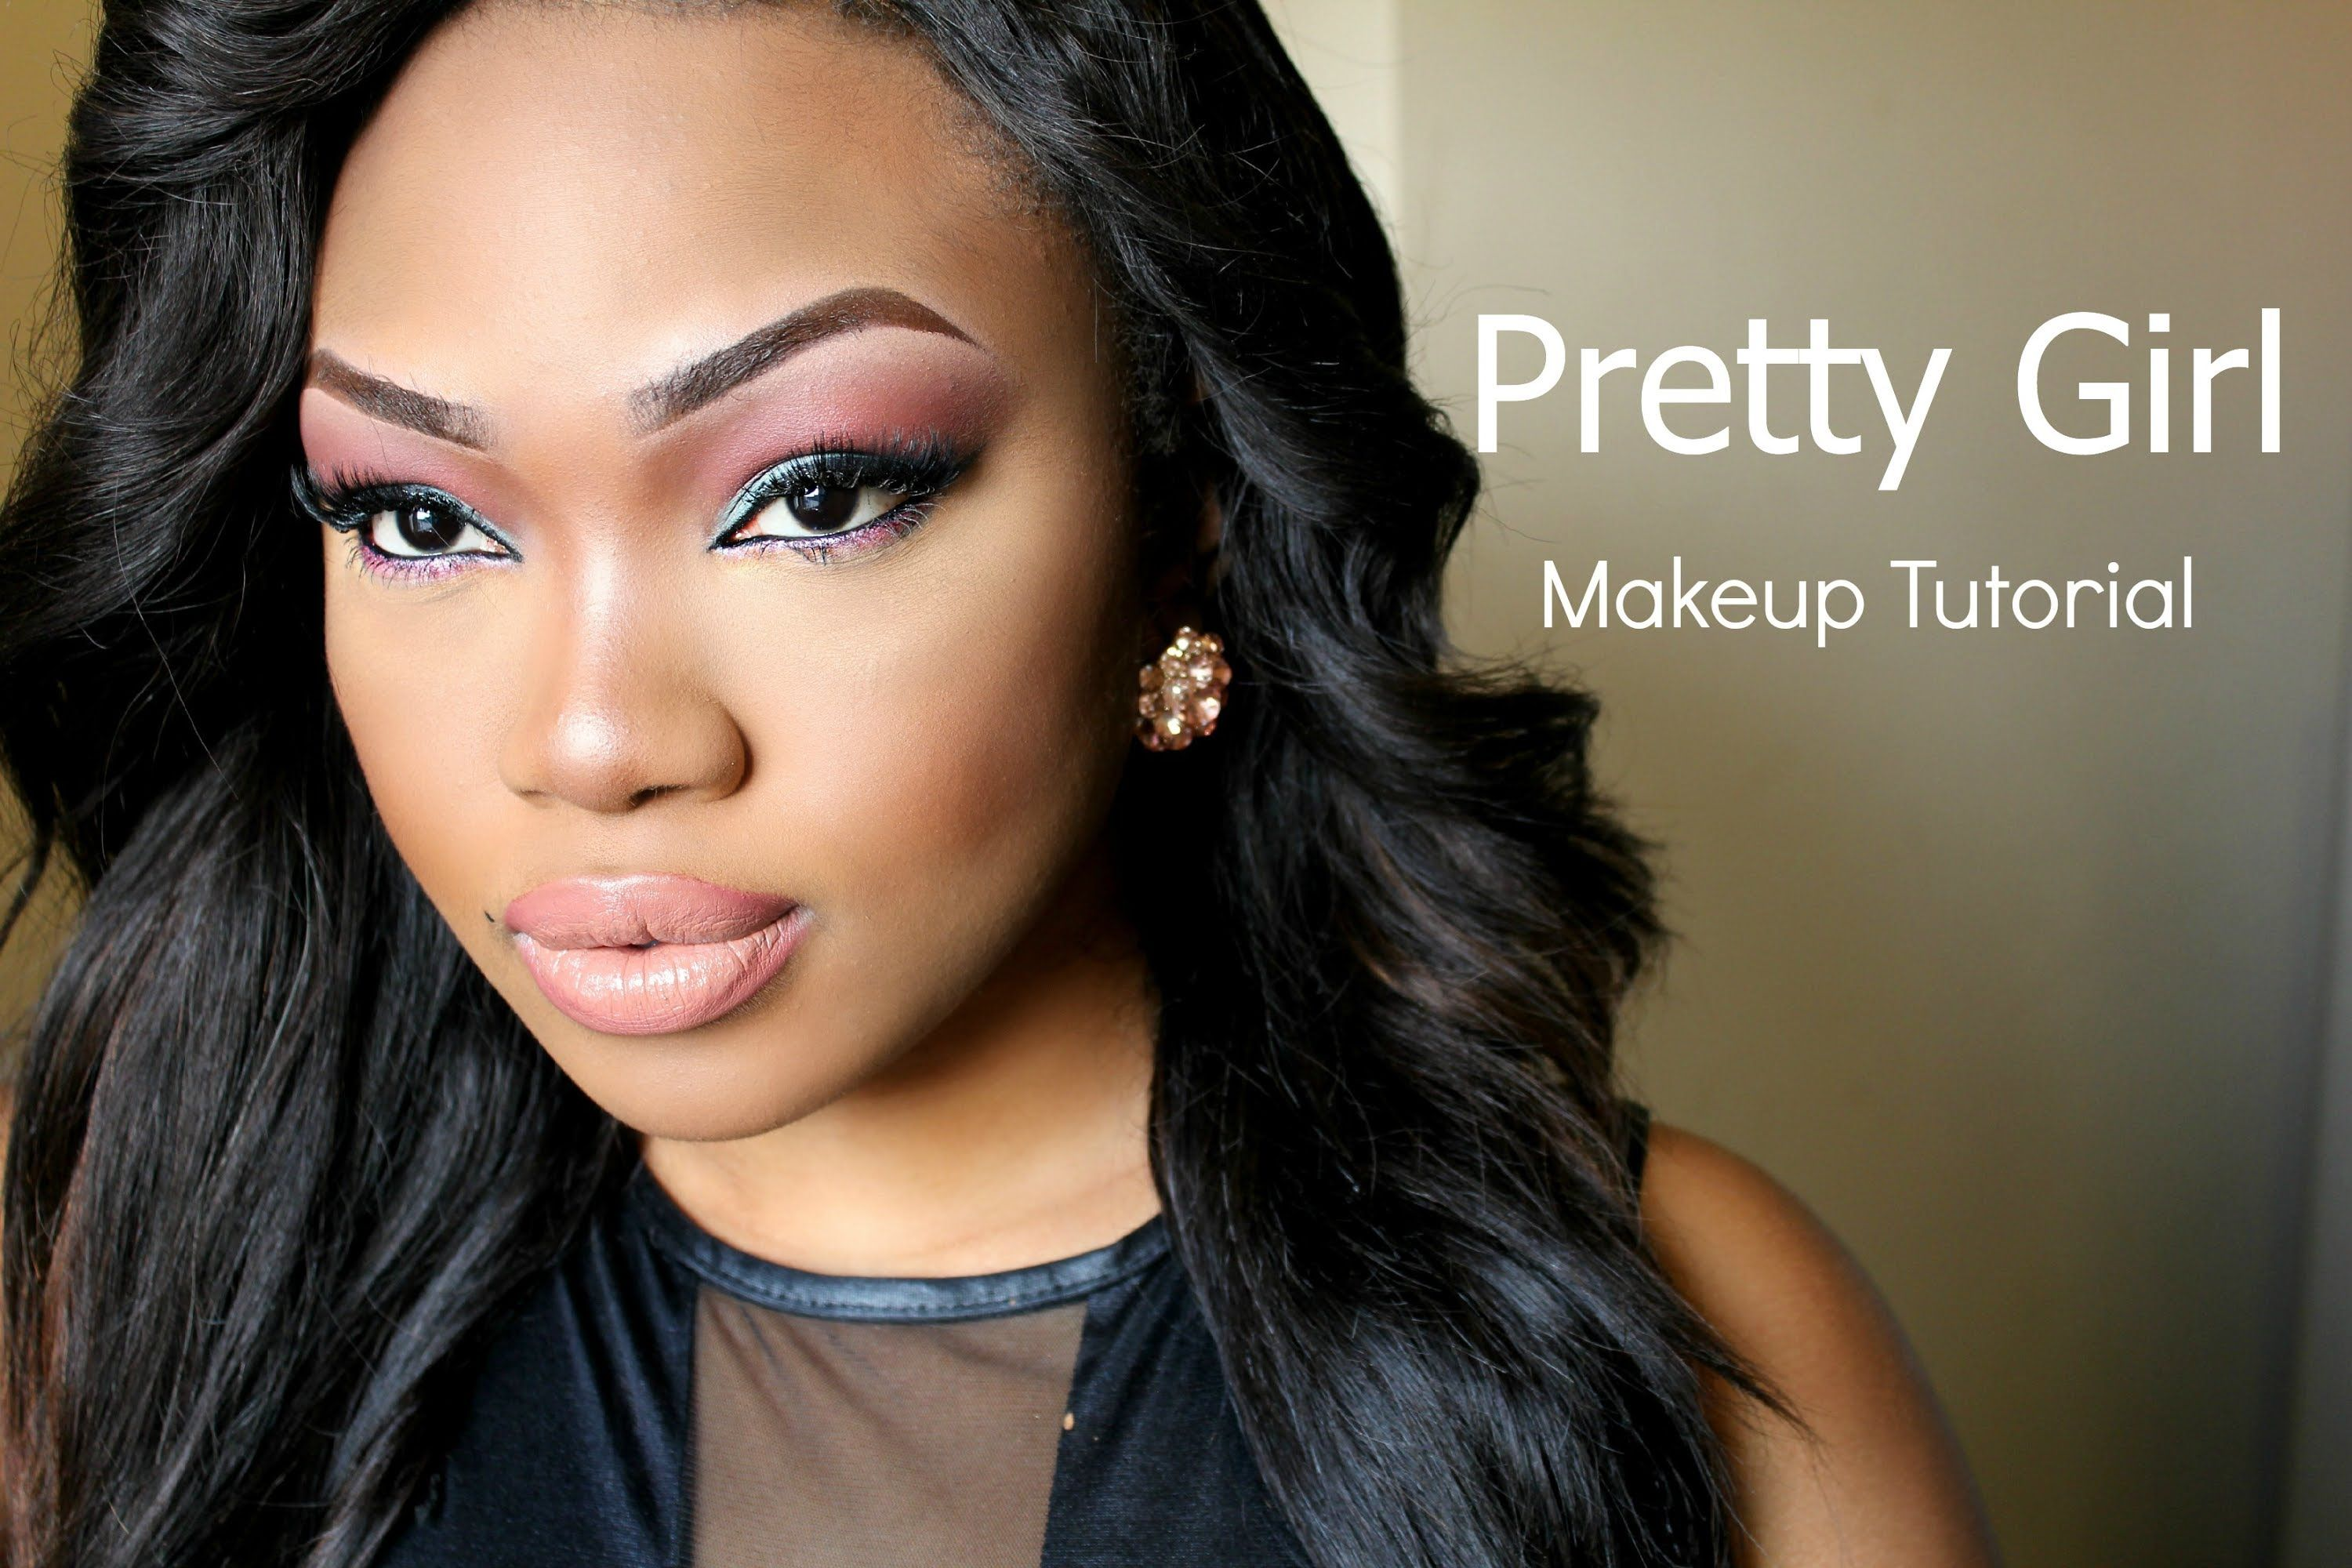 Pretty Girl Makeup Tutorial (With images) Girls makeup